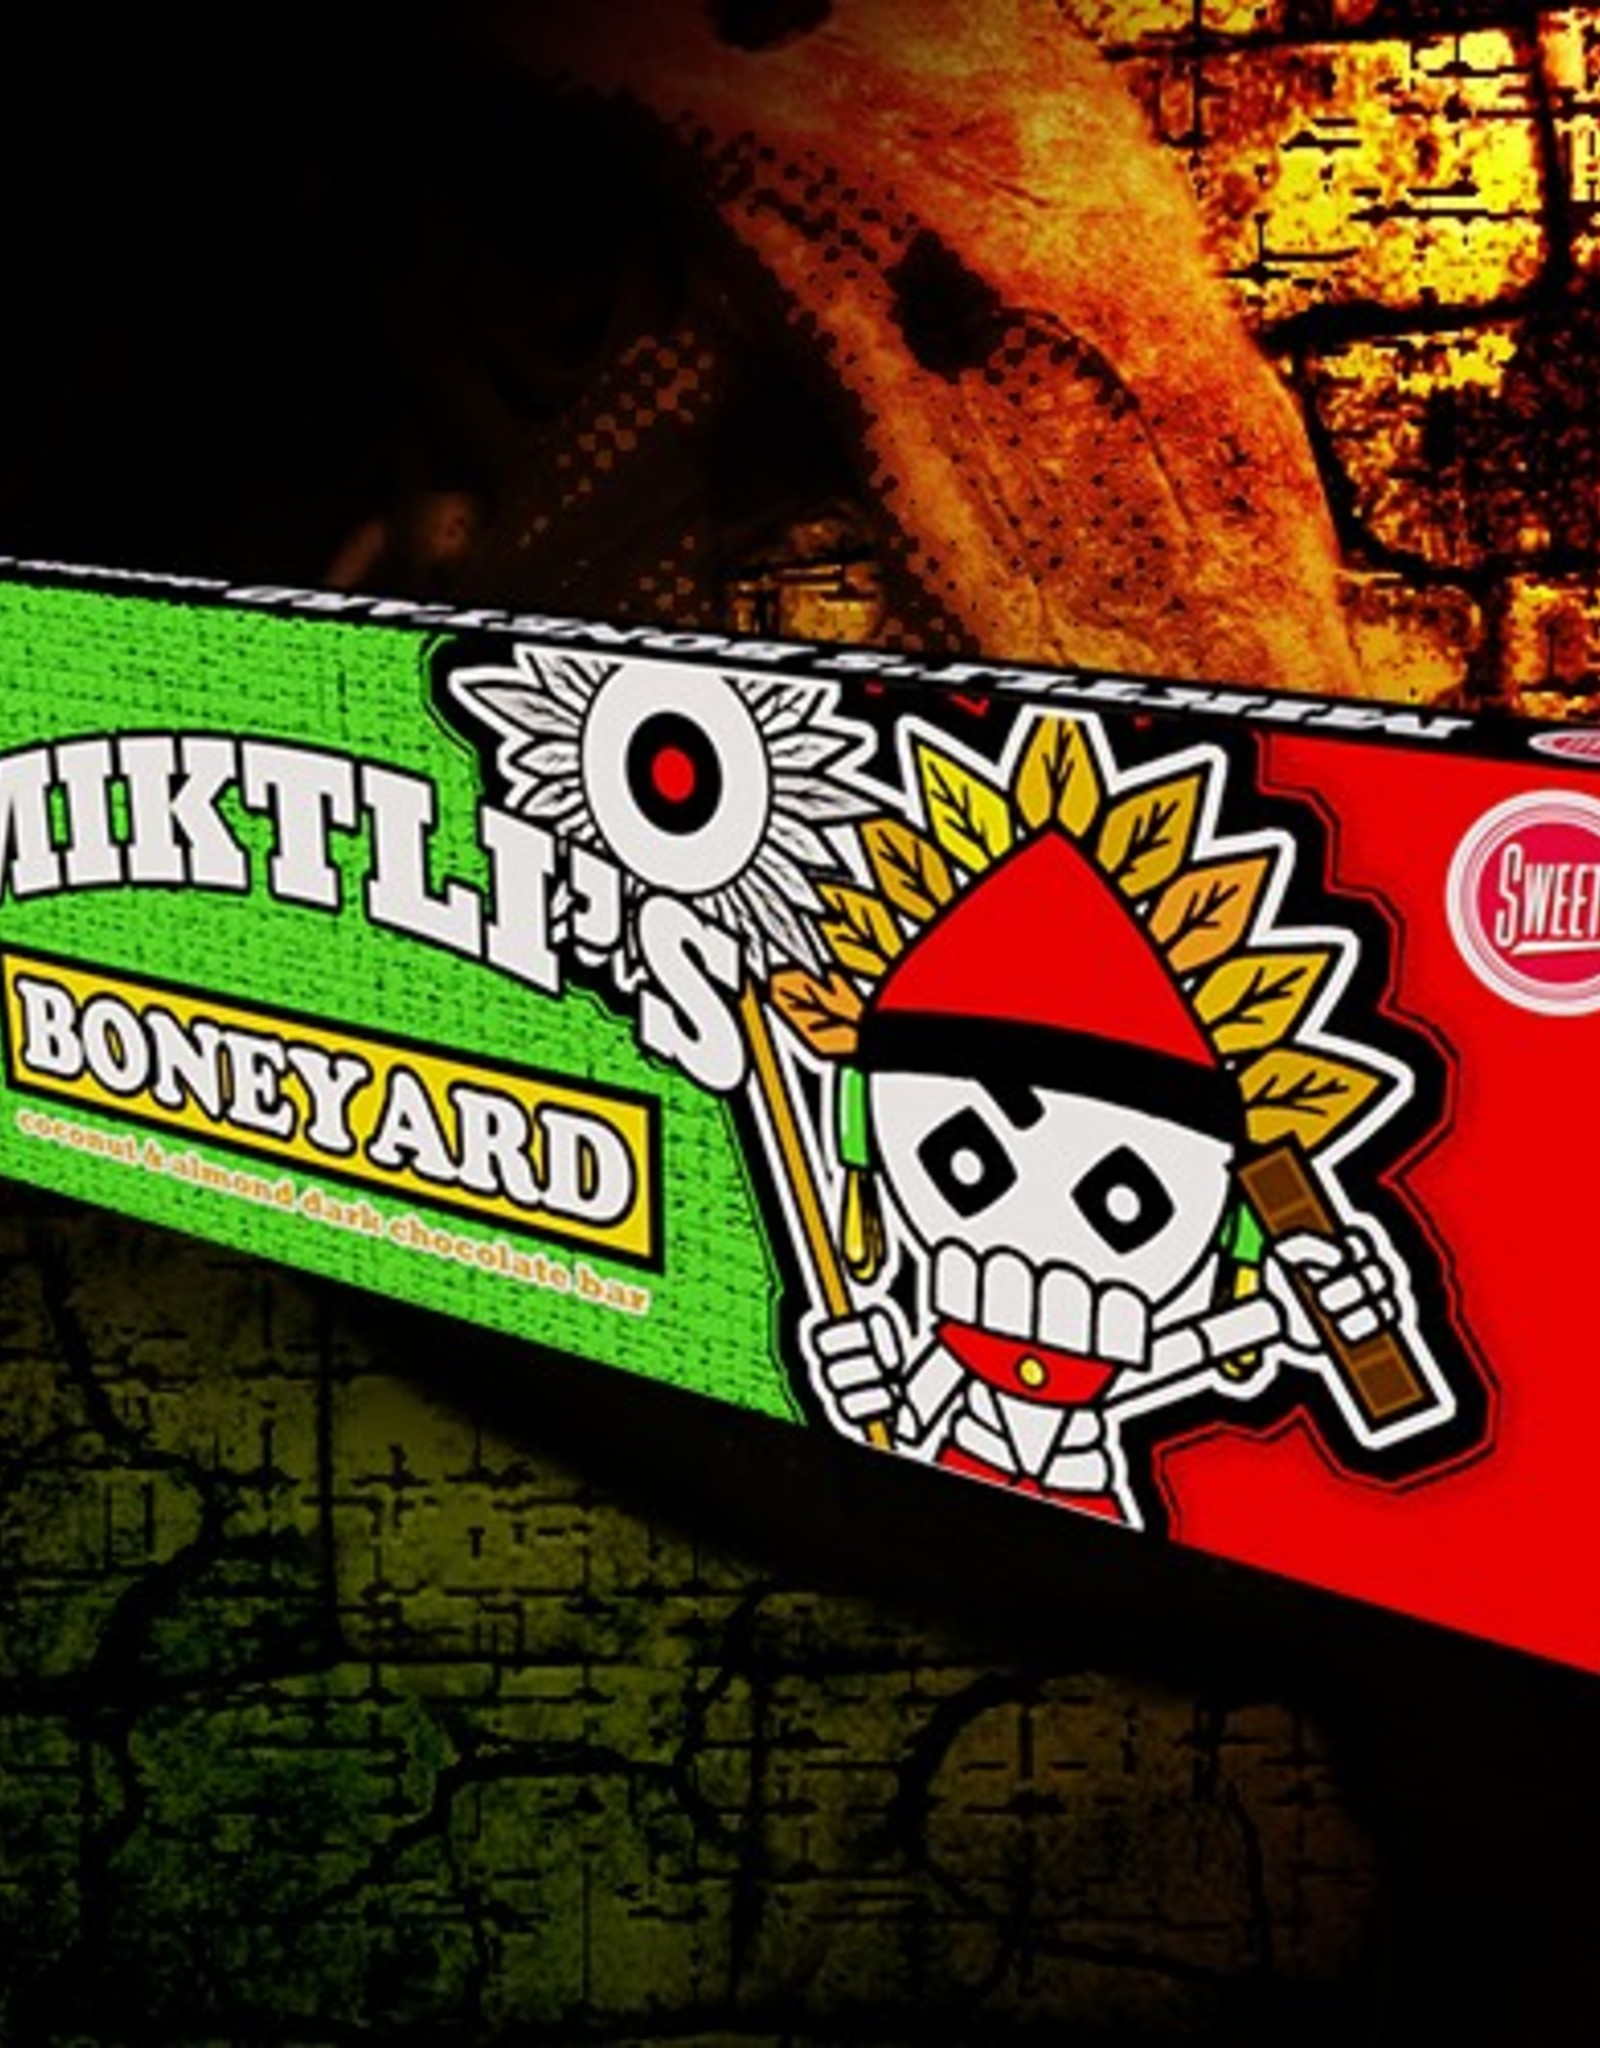 Miktli's Boneyard Bar